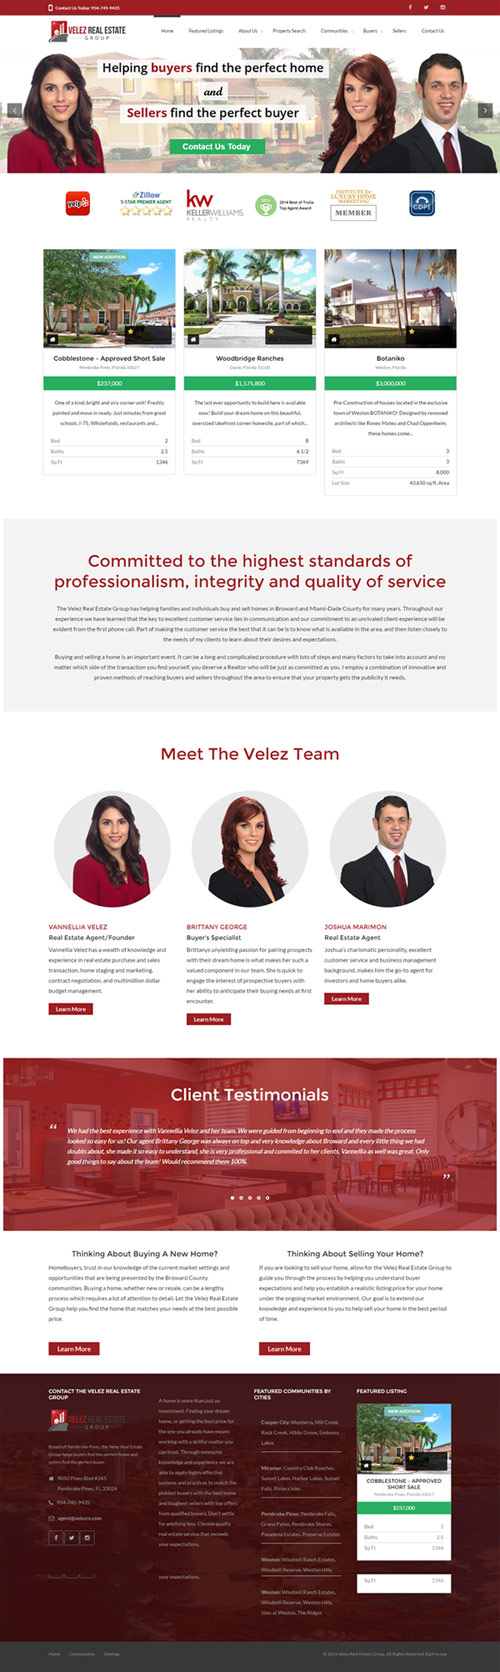 New velez Real Estate website